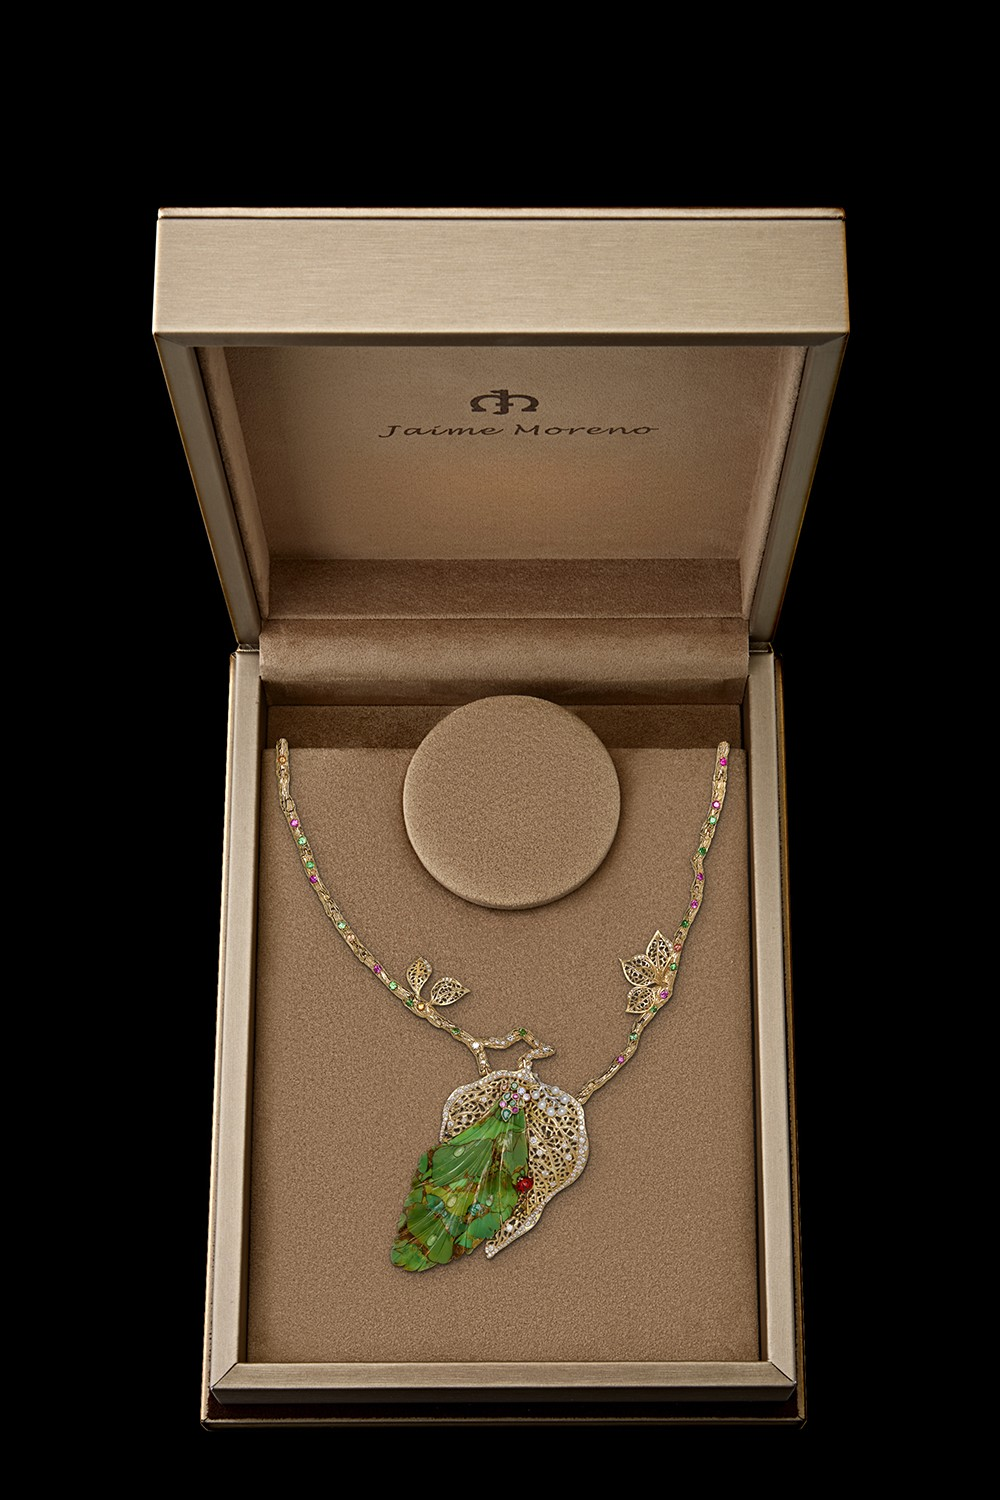 Four-Seasons-Necklace-Jaime-Moreno-Art-in-Fine-Jewelry-Best-Spanish-Luxury-Jewelry-Necklace-Packaging(1)